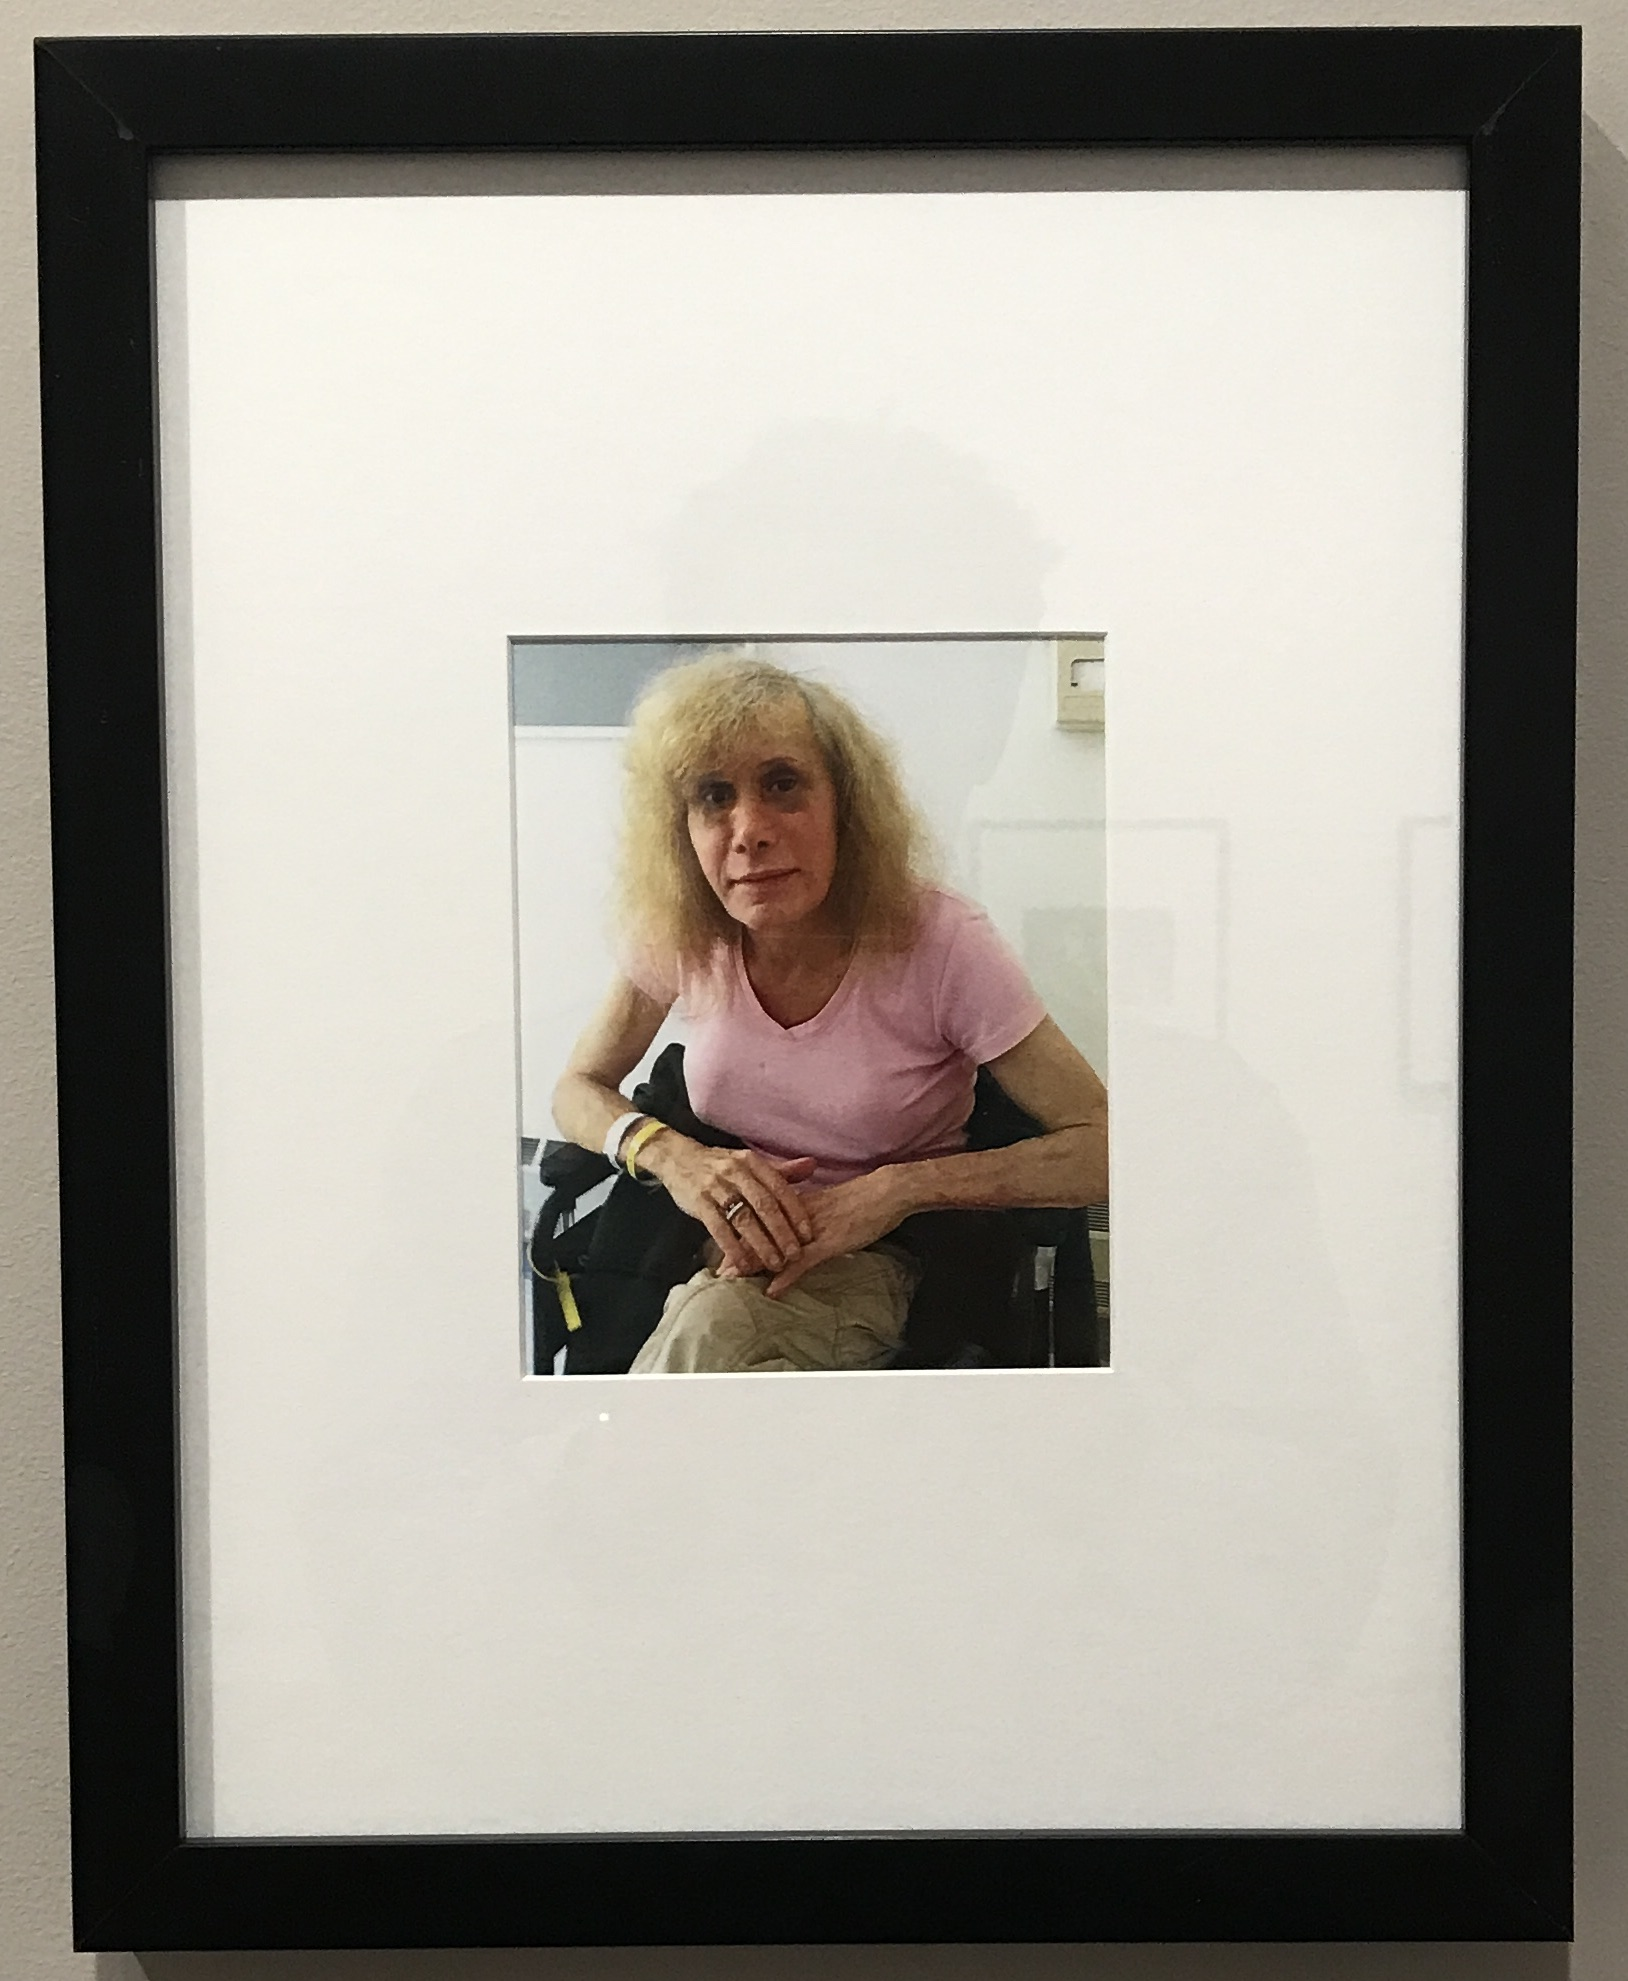 """Donna Gottschalk, """"Myla in rehab at Rivington House four months before she died"""", 2012. (Image by author)"""